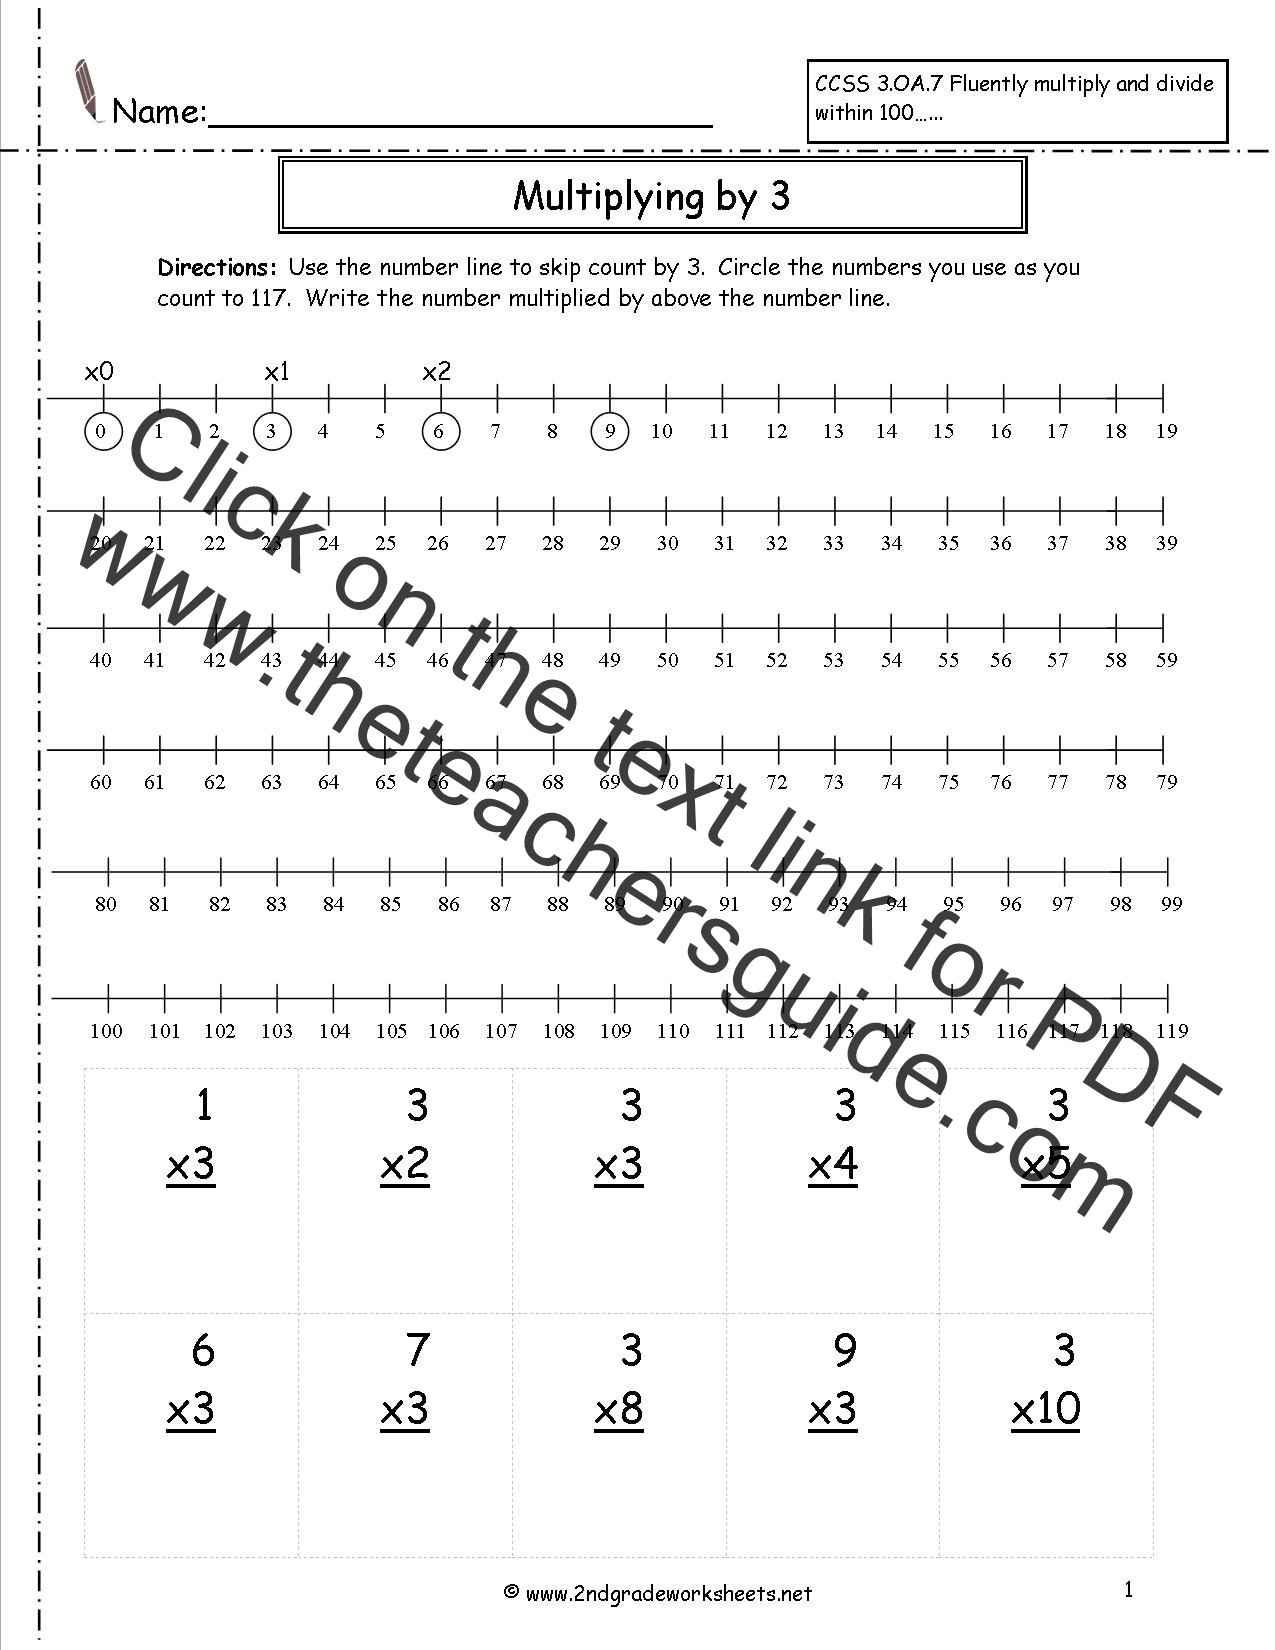 Number Lines Worksheets 3rd Grade Multiplication Worksheets and Printouts On Worksheets Ideas 2200